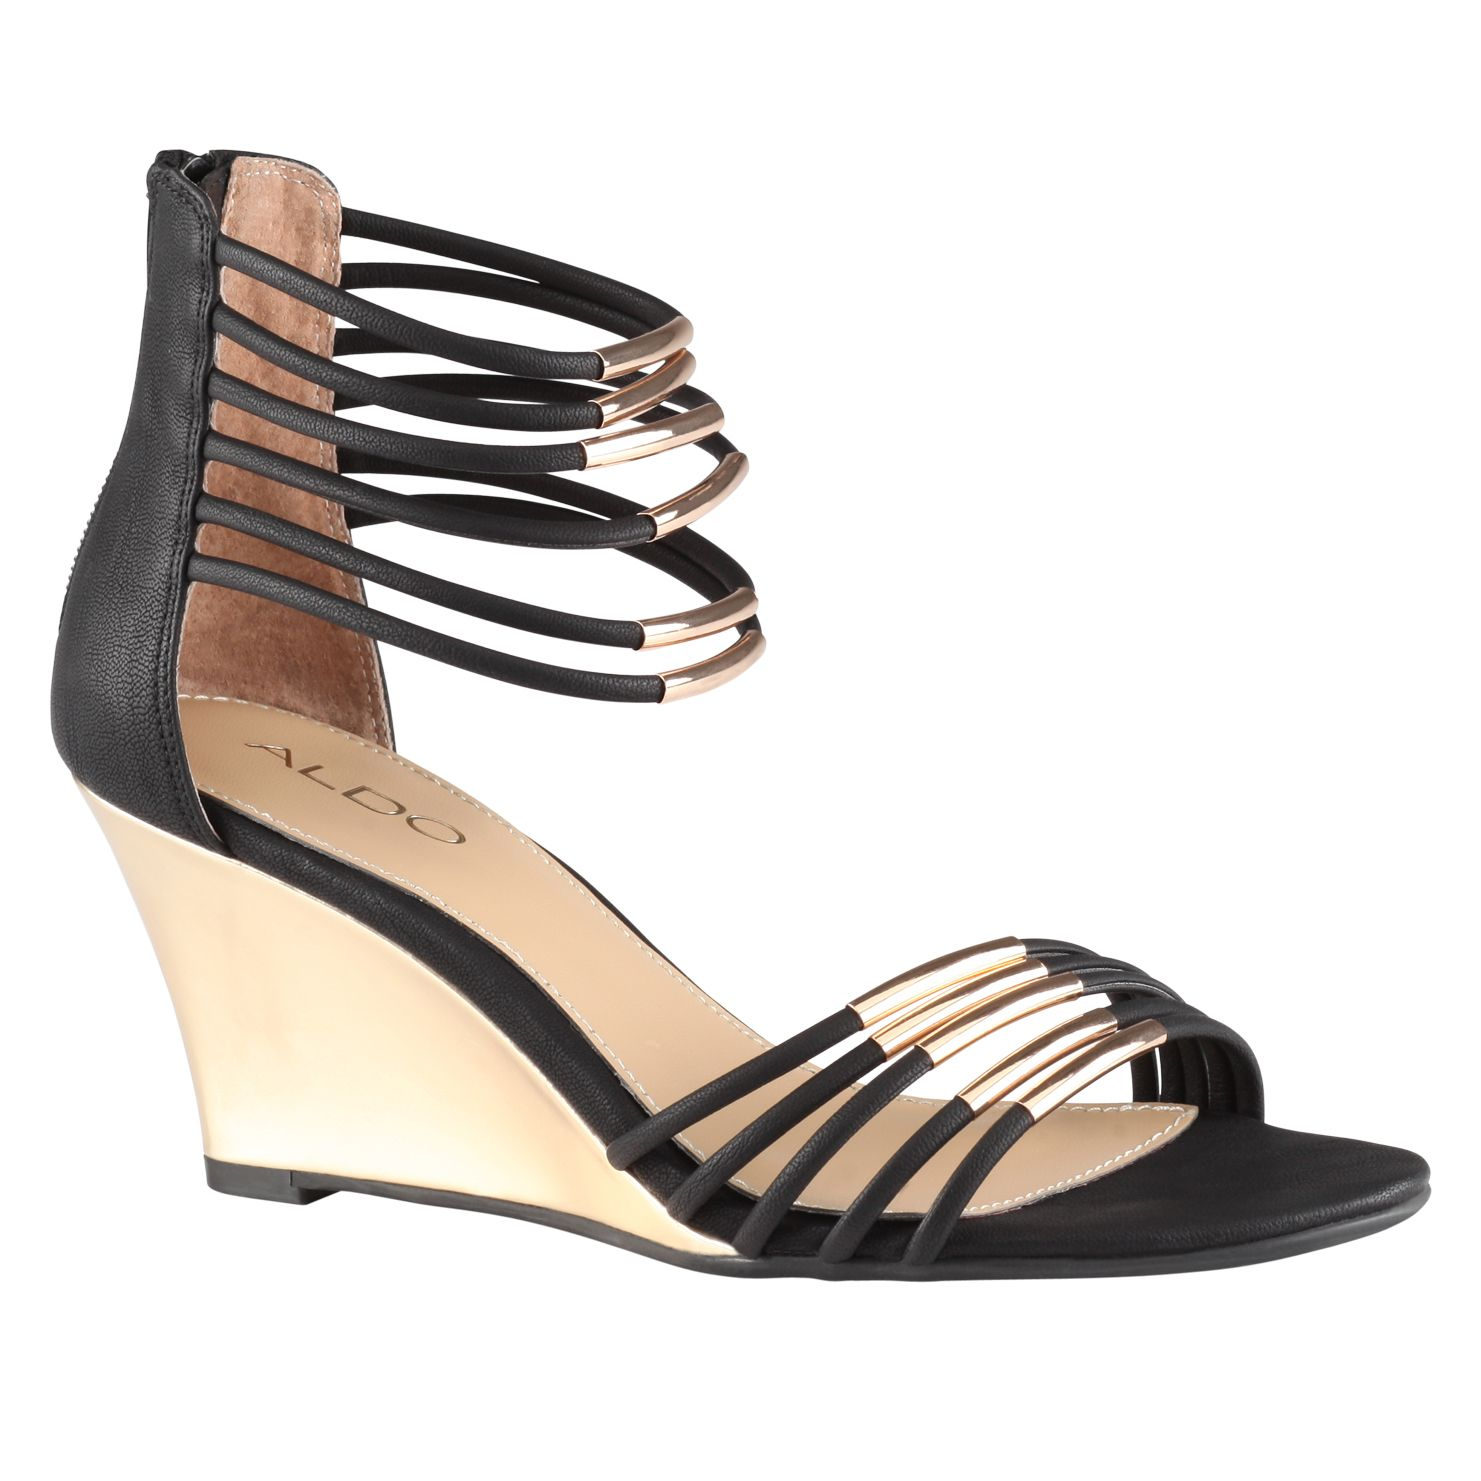 Kealla wedge strap sandals